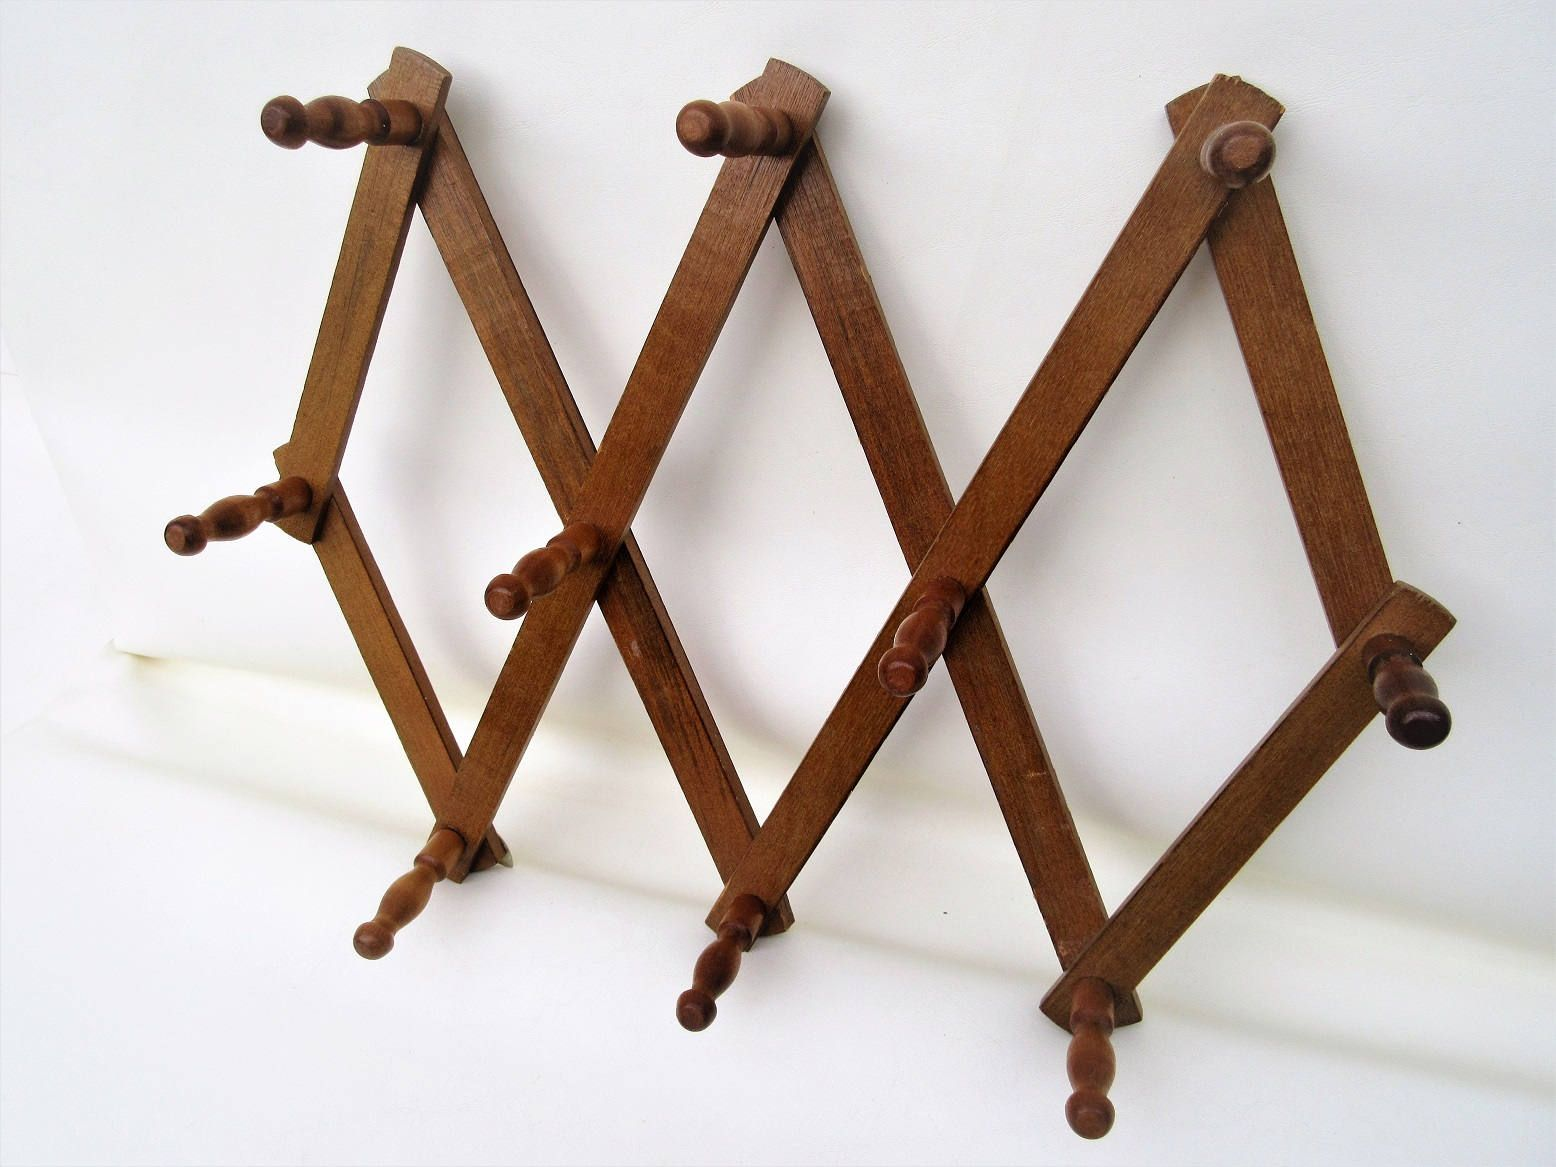 Vintage Accordion Peg Rack | Wooden Wall Rack | Expandable Wall Organizer |  Folding Hat Coat Rack | Wooden Walls, Wall Racks And Coat Racks